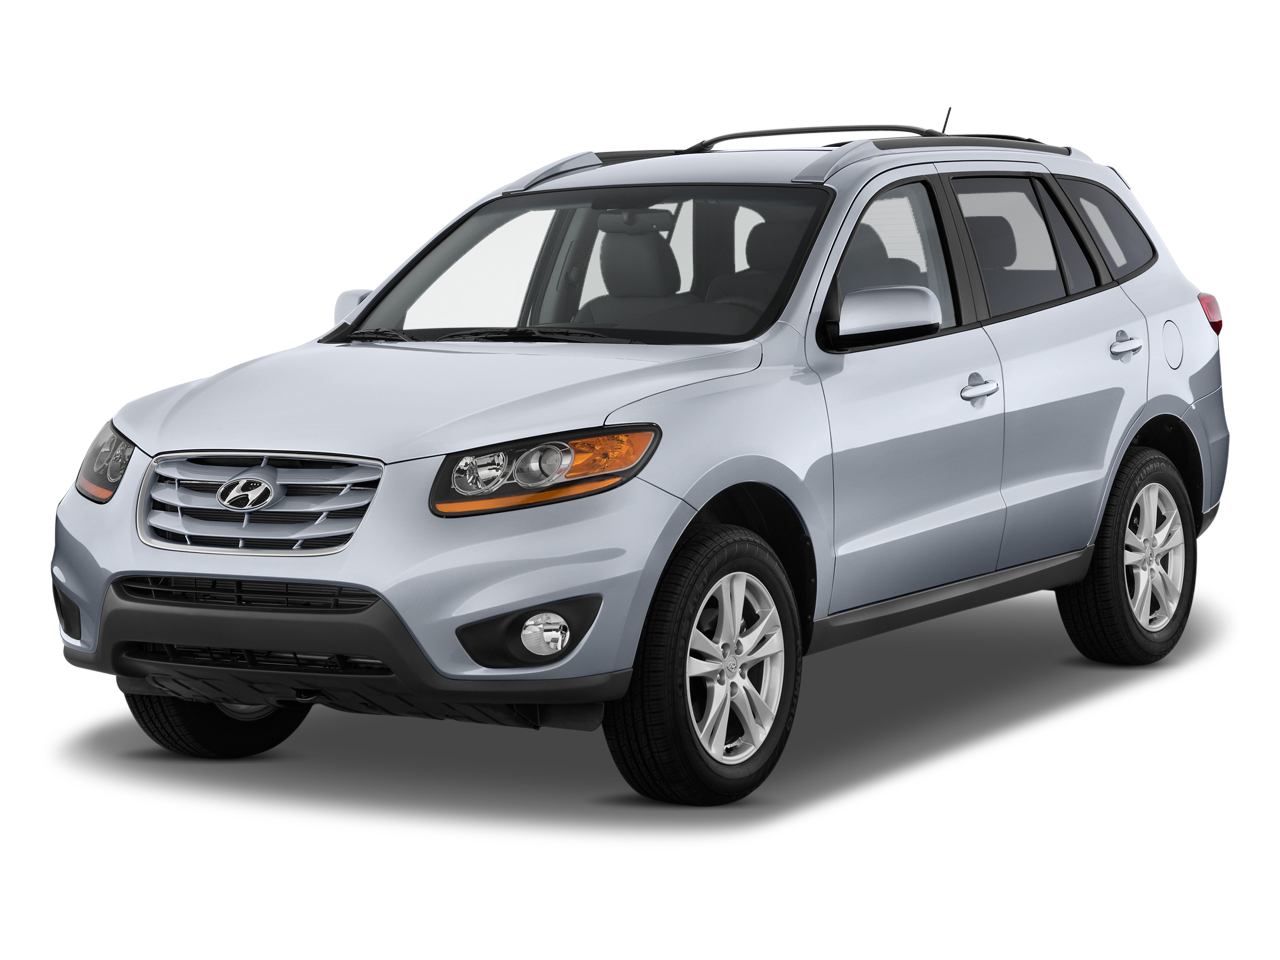 2009 Hyundai Santa Fe Review The Car Connection Autos Post